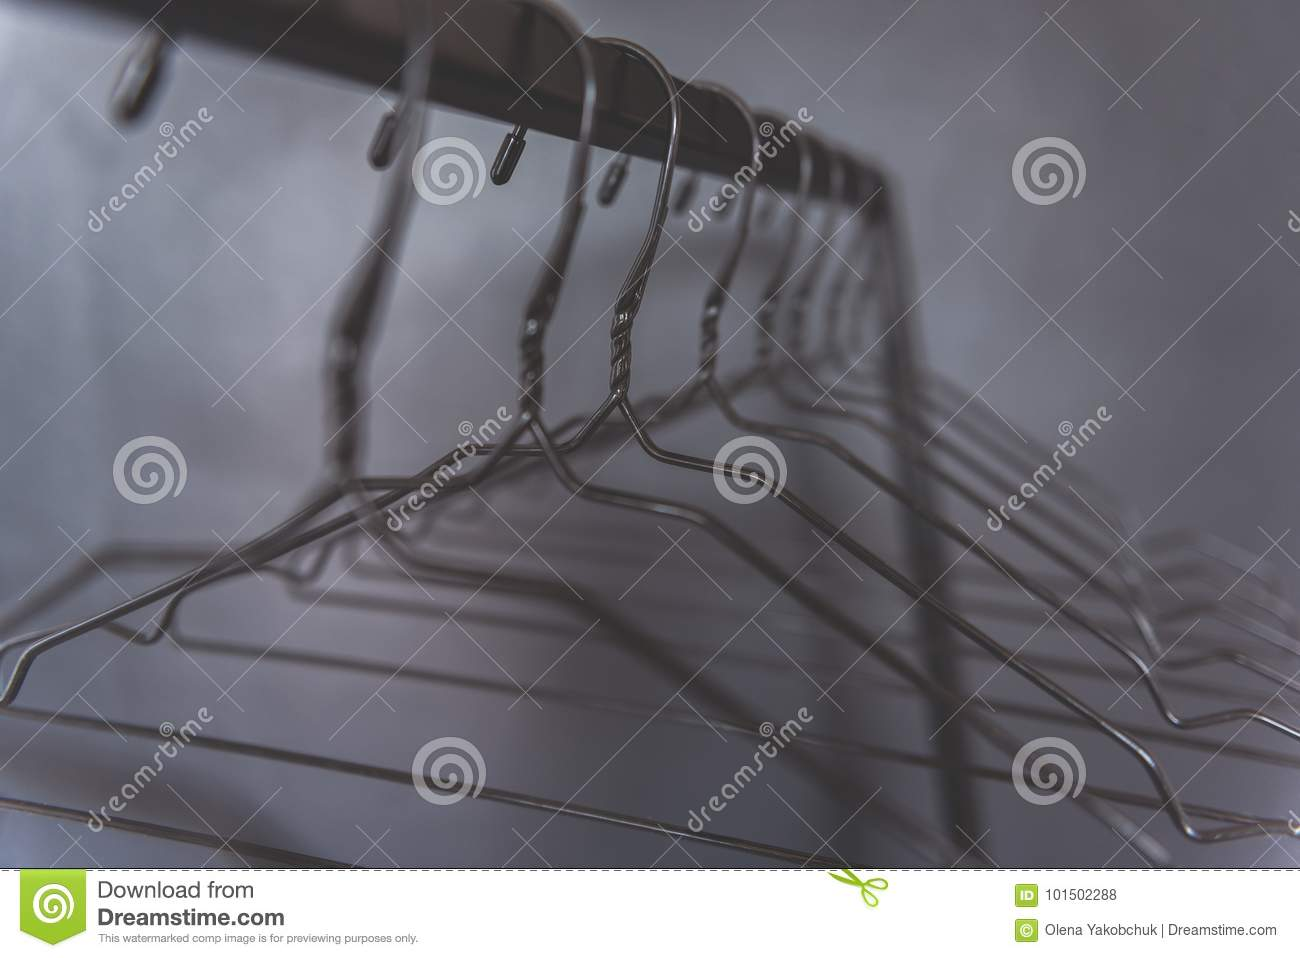 1f2b0d6e962 Empty hangers are hanging at cross-bar near grey wall. Close up of shaped  wires. Copy space. Nobody